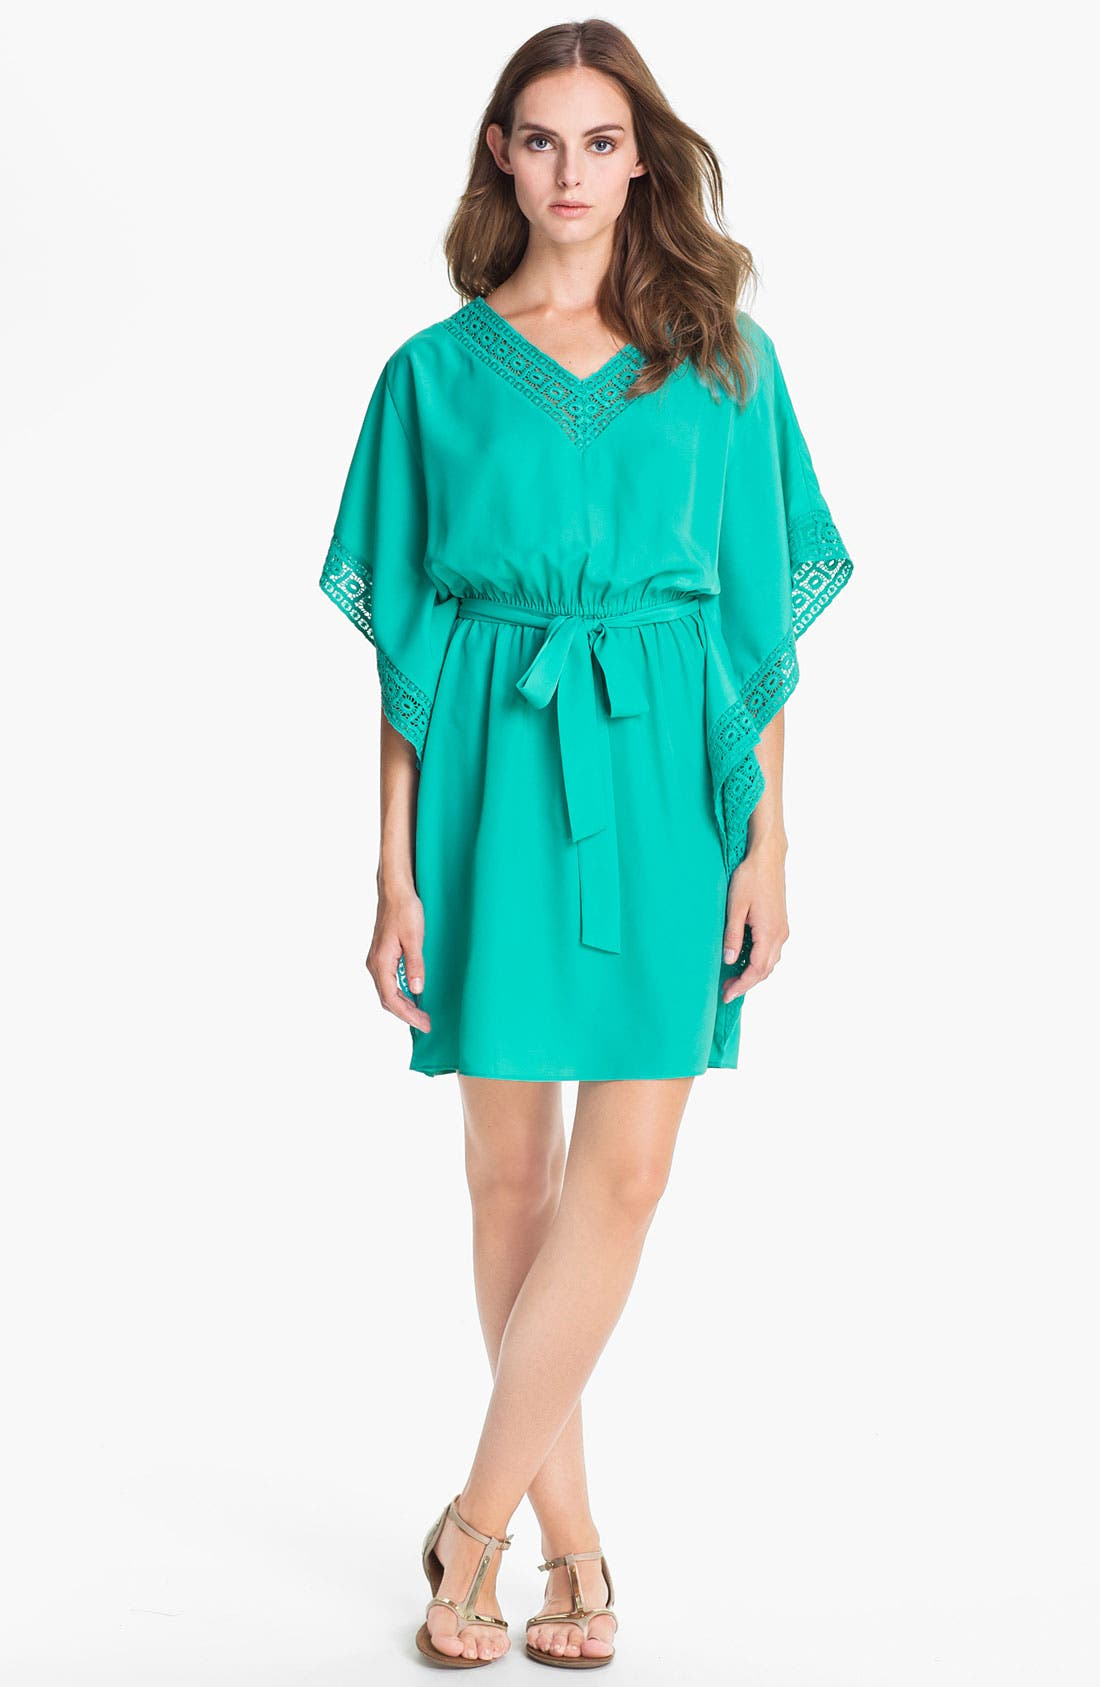 Main Image - Suzi Chin for Maggy Boutique Batwing Blouson Dress